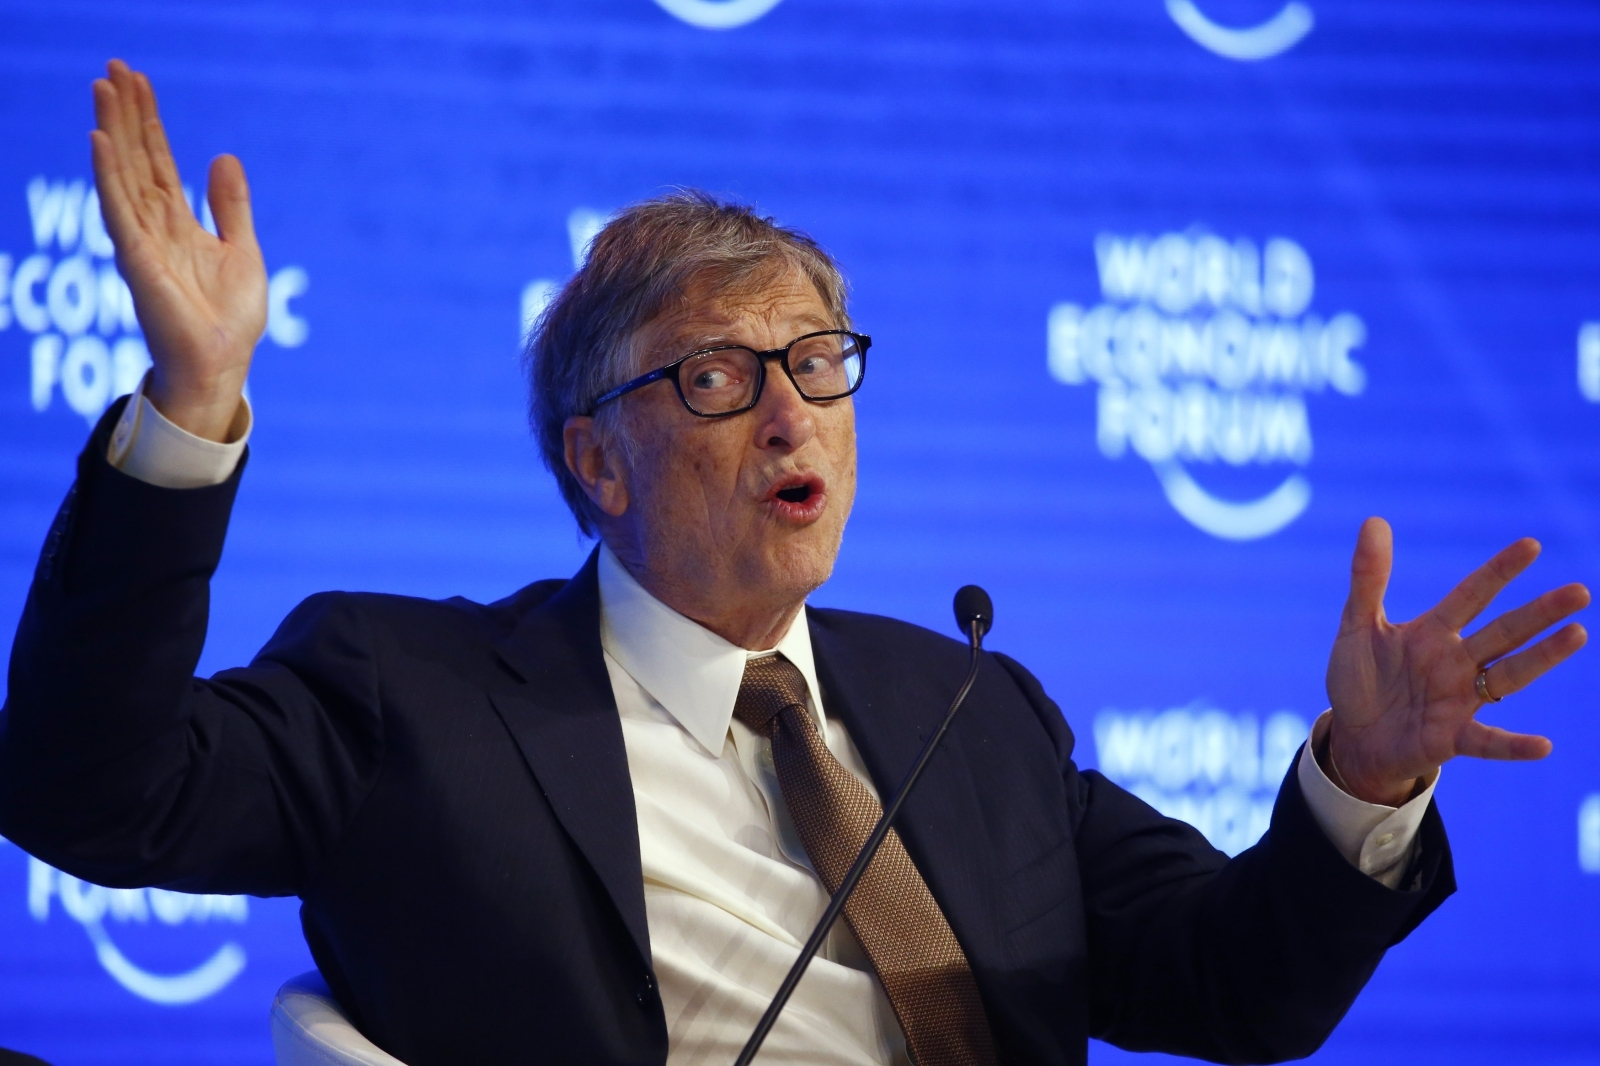 Bill Gates reveals he uses Android